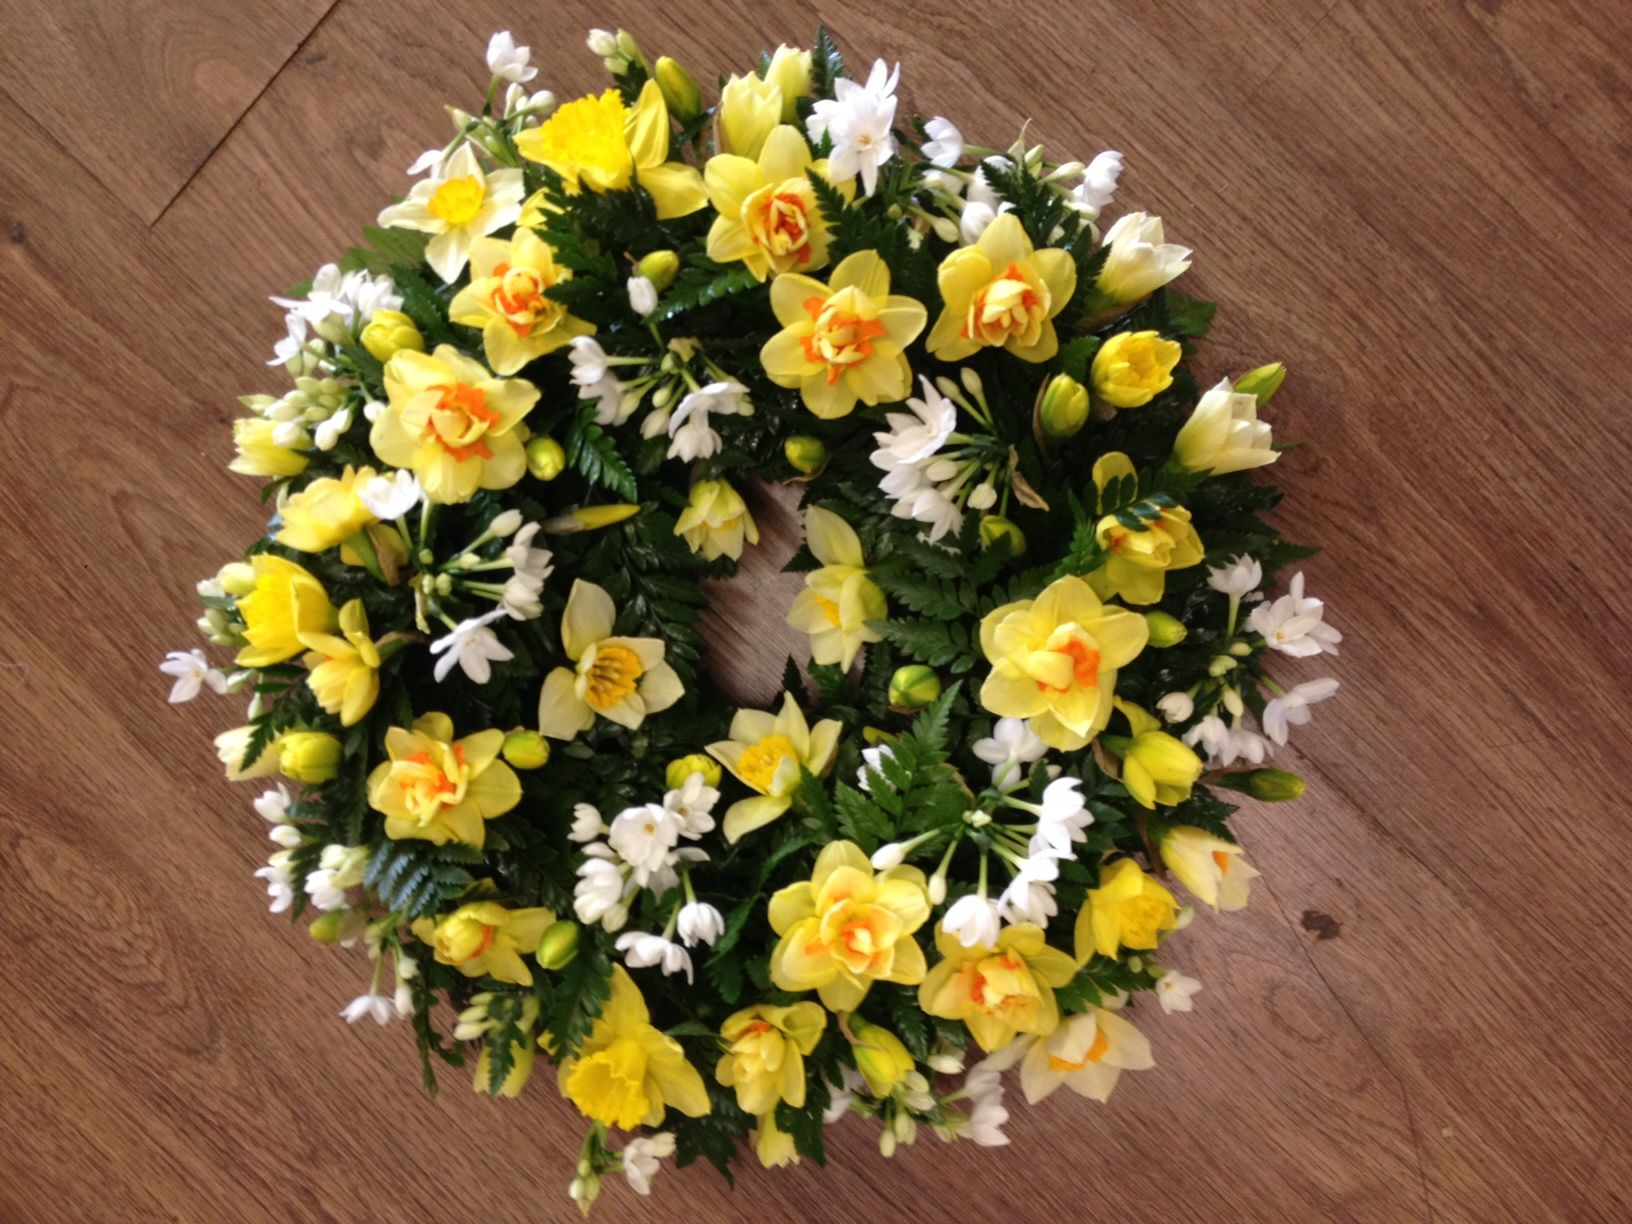 11 best funeral flowers images on pinterest funeral flowers daffodil wreath available in spring only call 0208 500 8833 for details izmirmasajfo